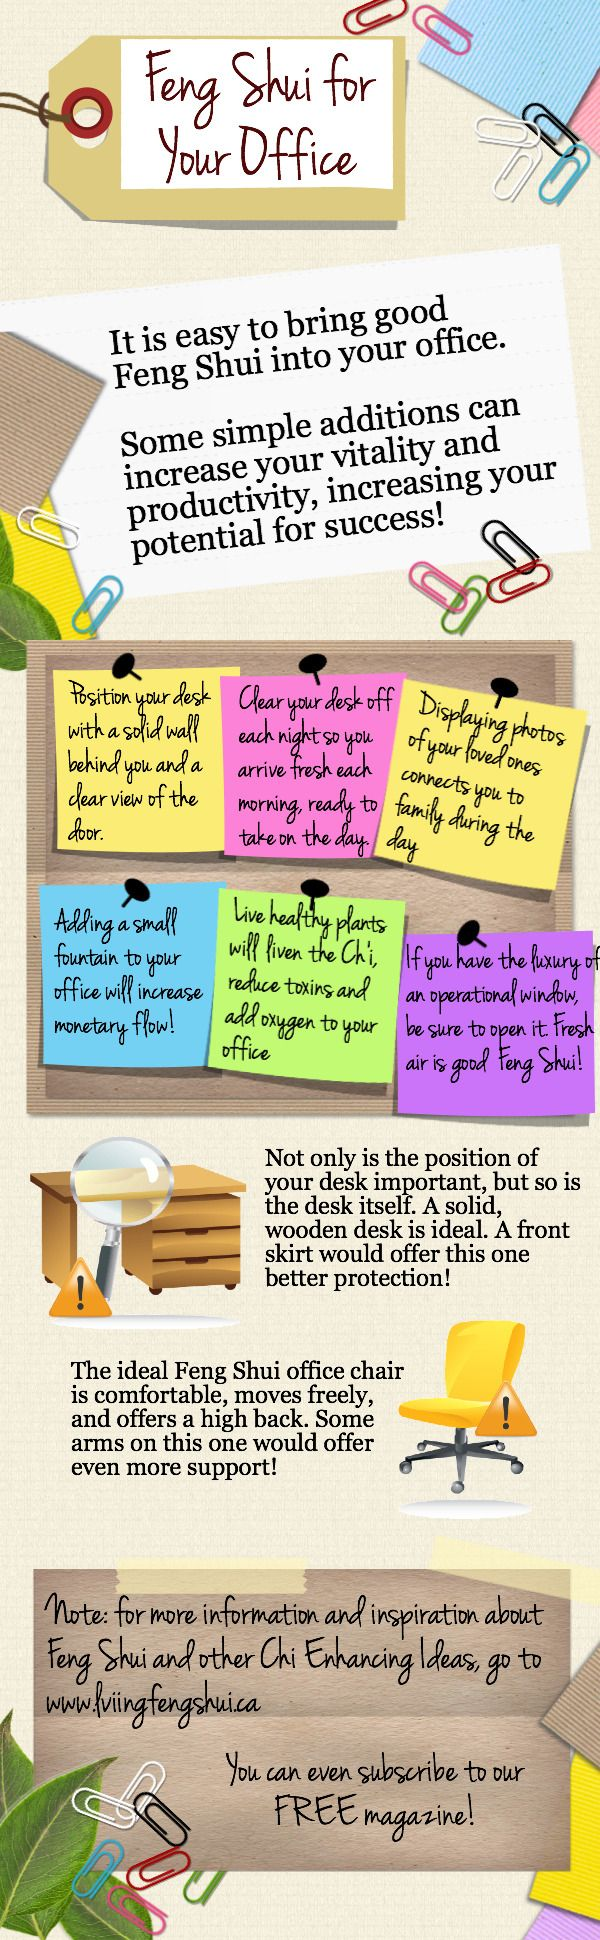 office feng shui layout. Some Quick Feng Shui Tips For The Office Layout